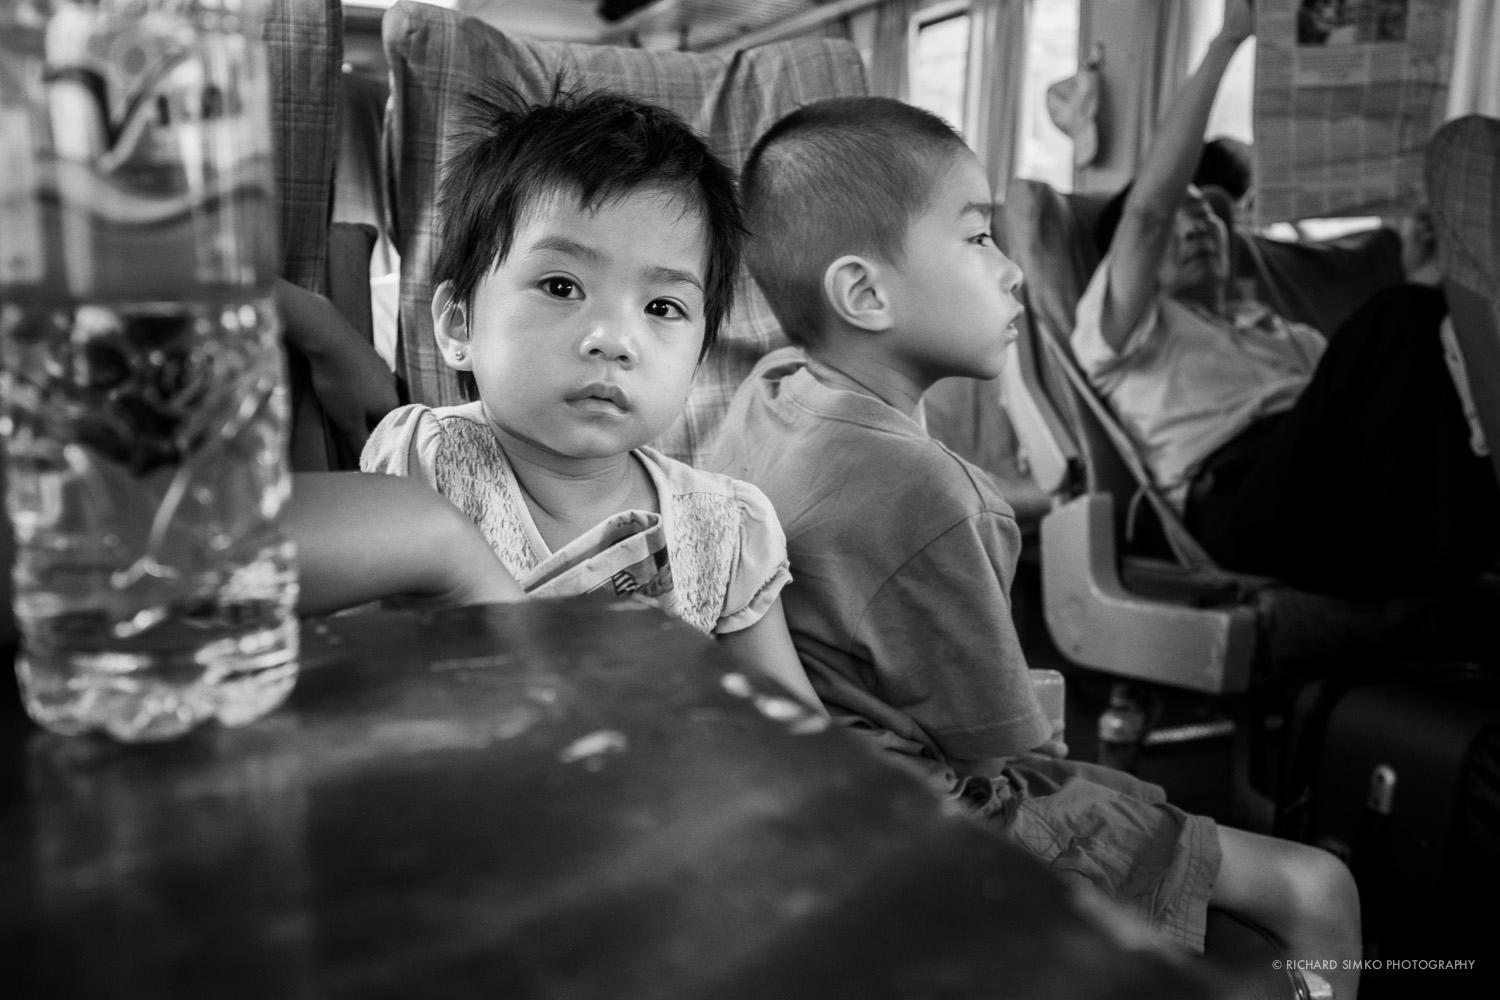 I travelled from Da Nang to Hue by train sitting with lovely family with two young kids. During 2 hours I spend photographing them they never noticed I am taking photographs. (Thank you Fuji X100s for non existent shutter noise). I loved the eyes of this little girl. Shooting from the hip or little folding table that are on trains I was lucky enough to catch her dreamy look.